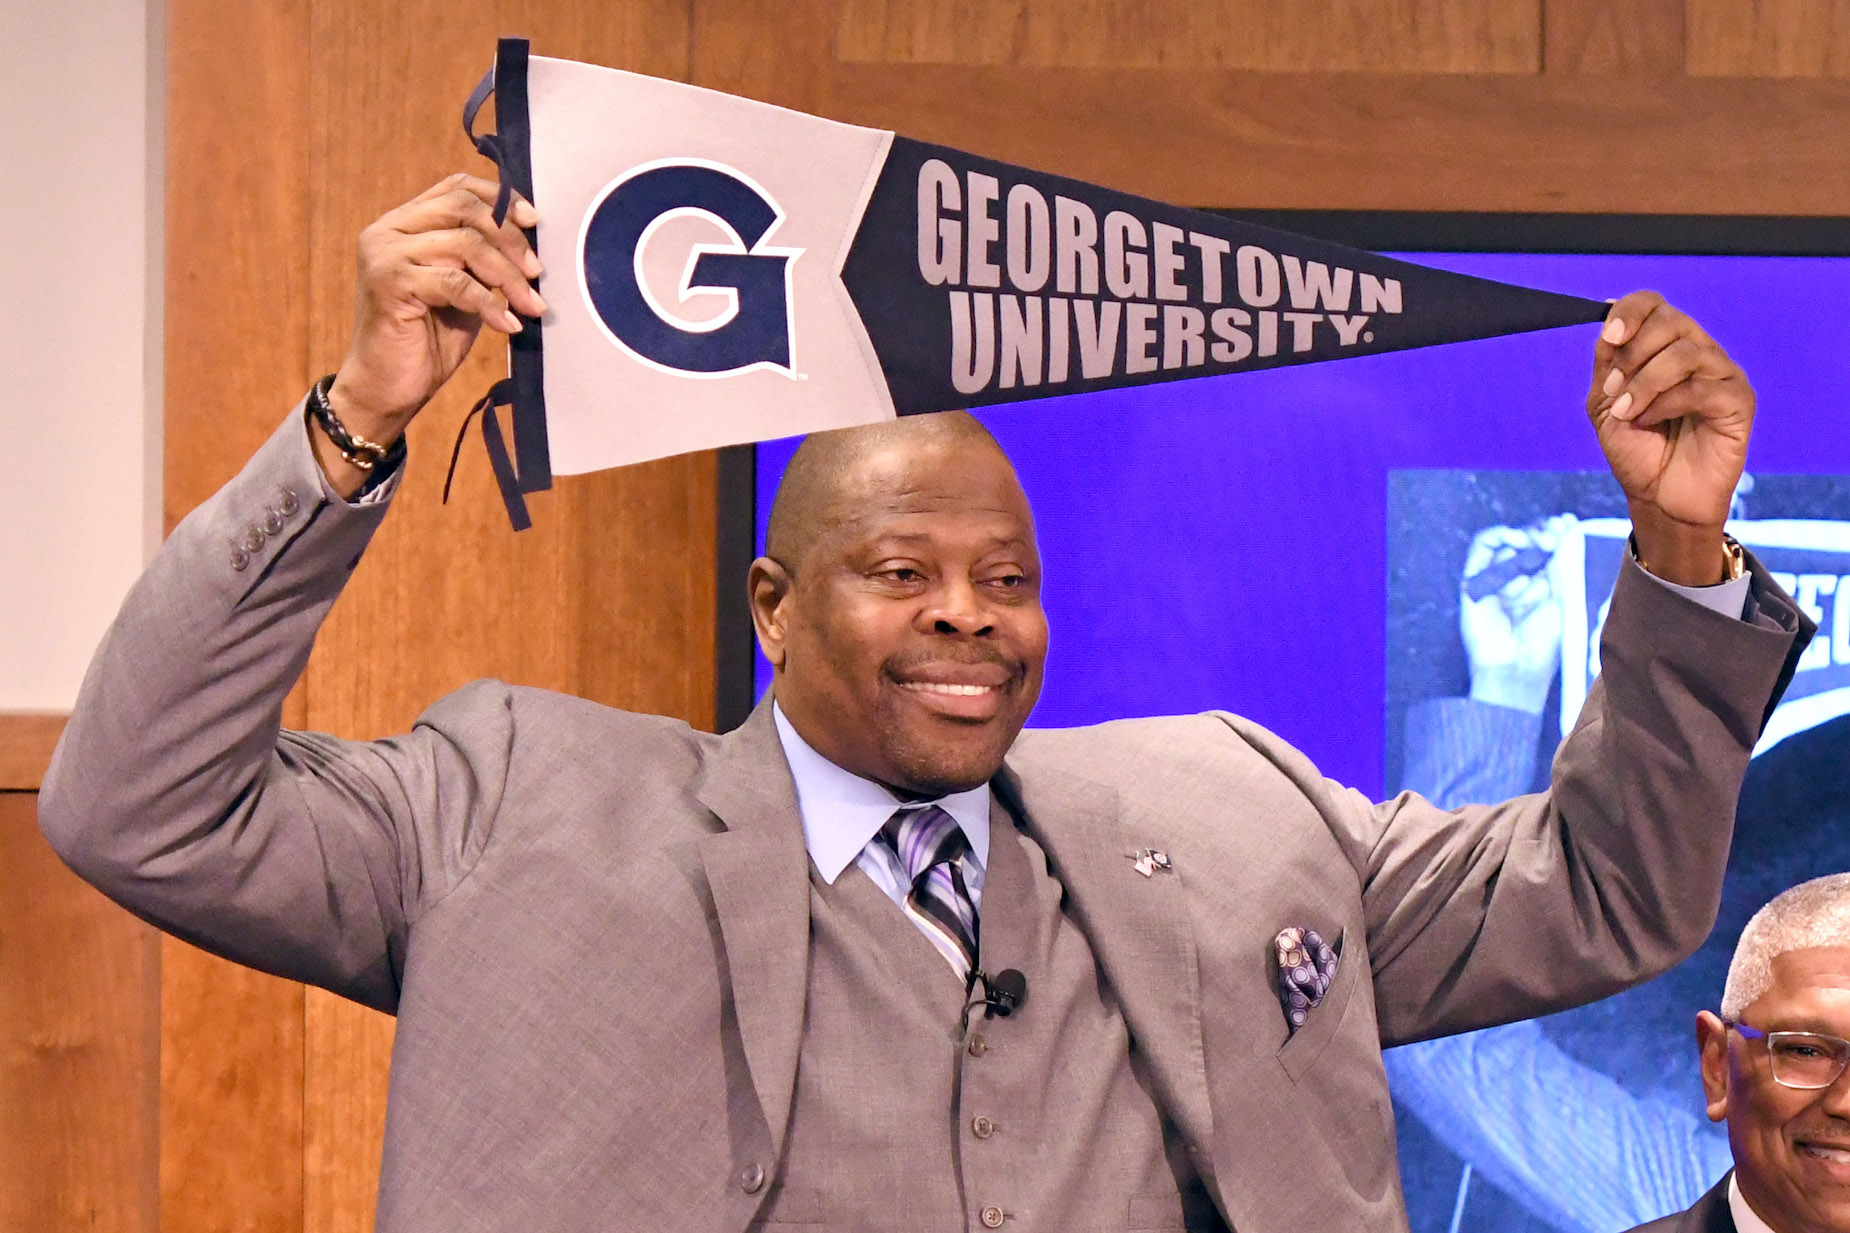 Patrick Ewing is introduced as the Georgetown University head coach.